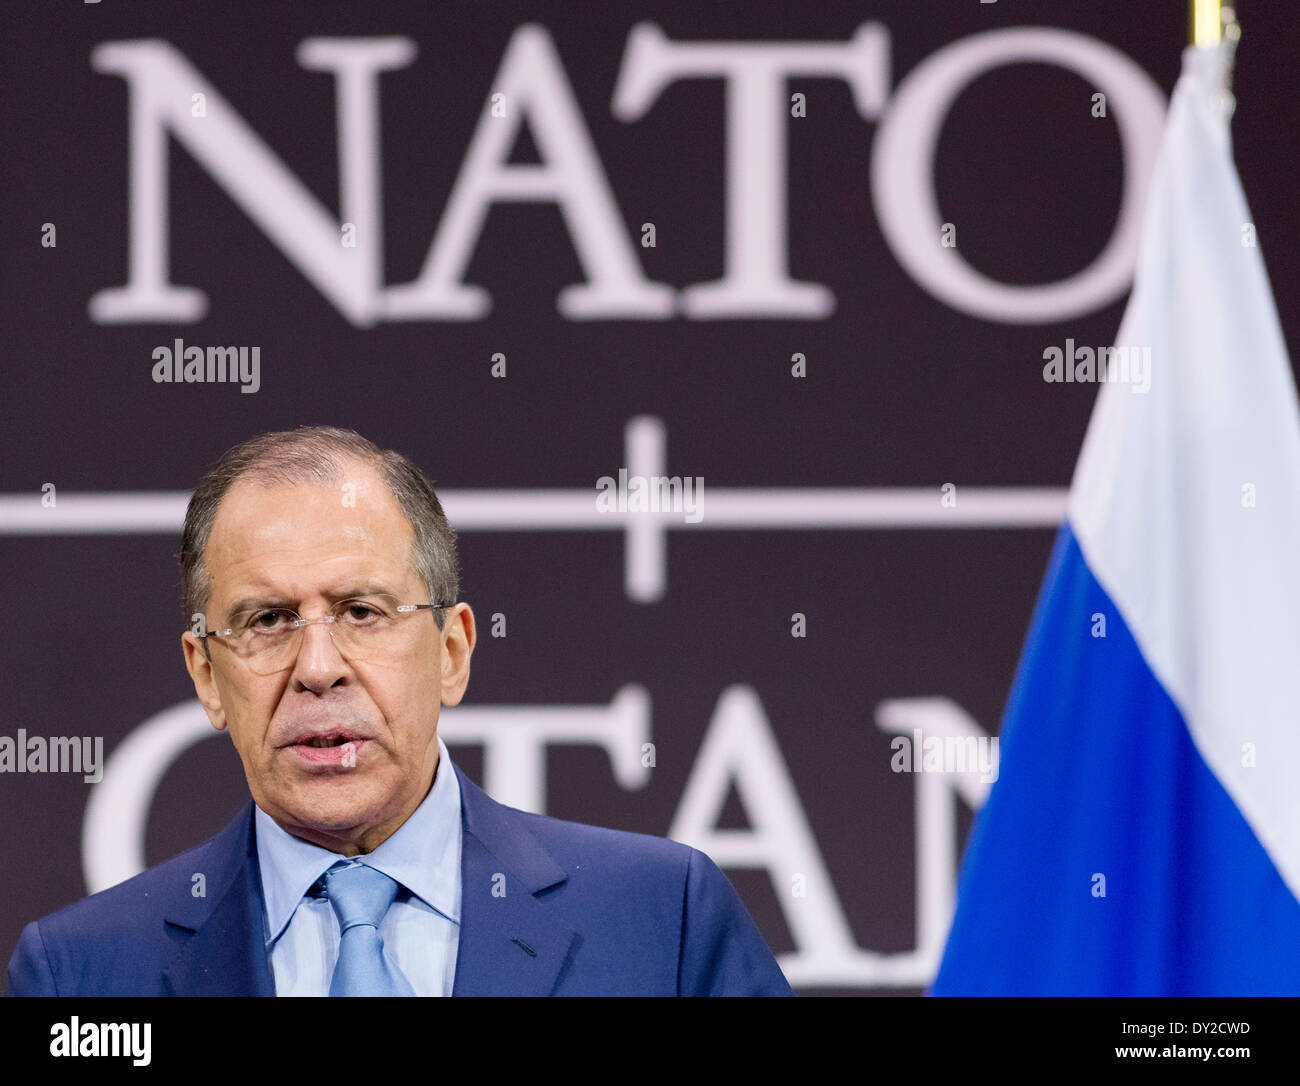 Brussels, Sergey Viktorovich Lavrov attending the Meetings of NATO Ministers of Foreign Affairs on 2013/04/23 - Stock Image